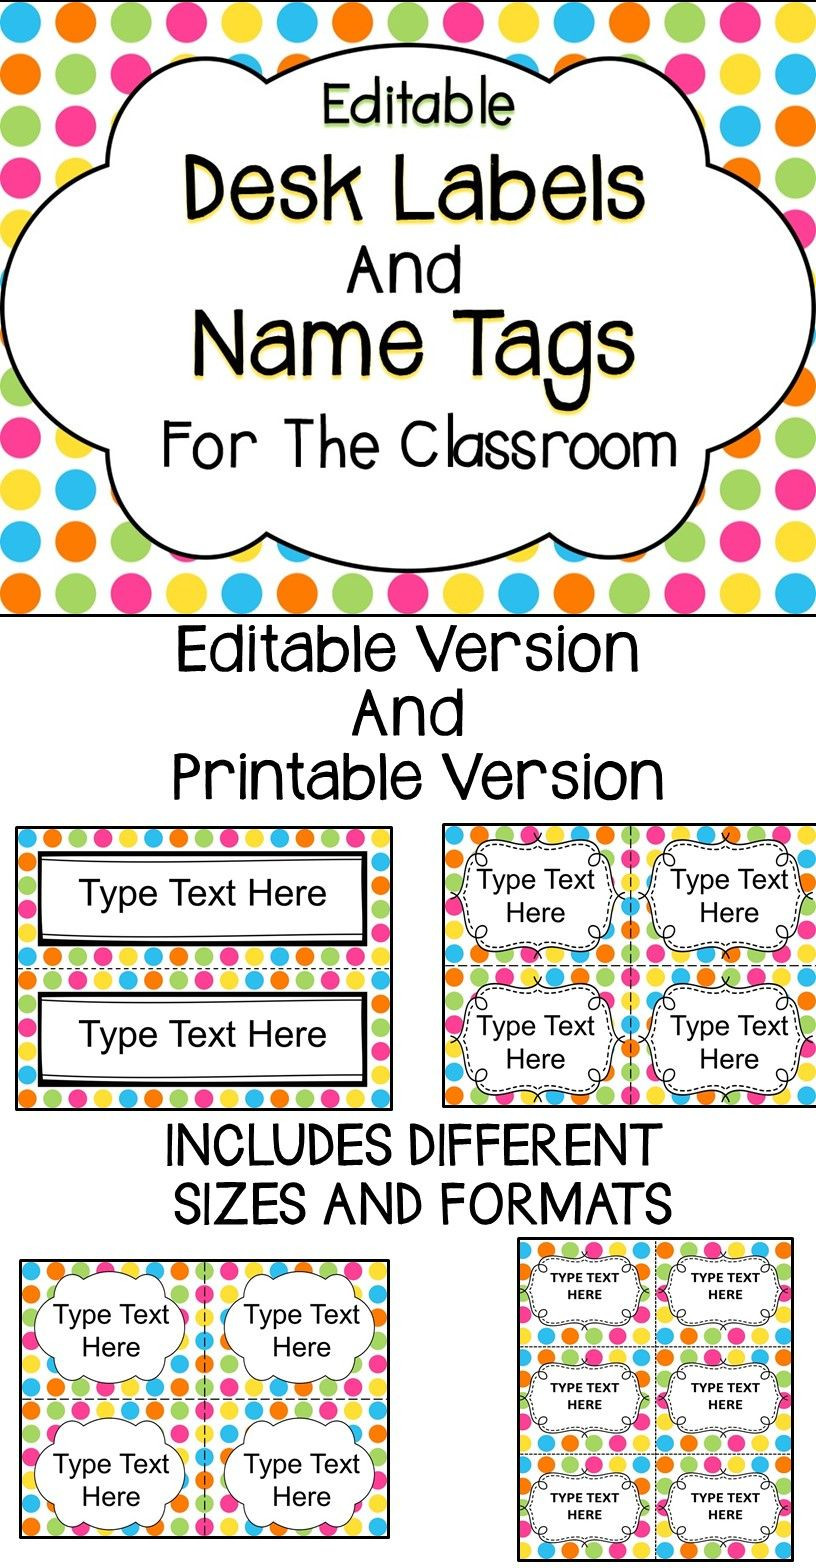 Editable Name Tags and Desk Labels Classroom Organization